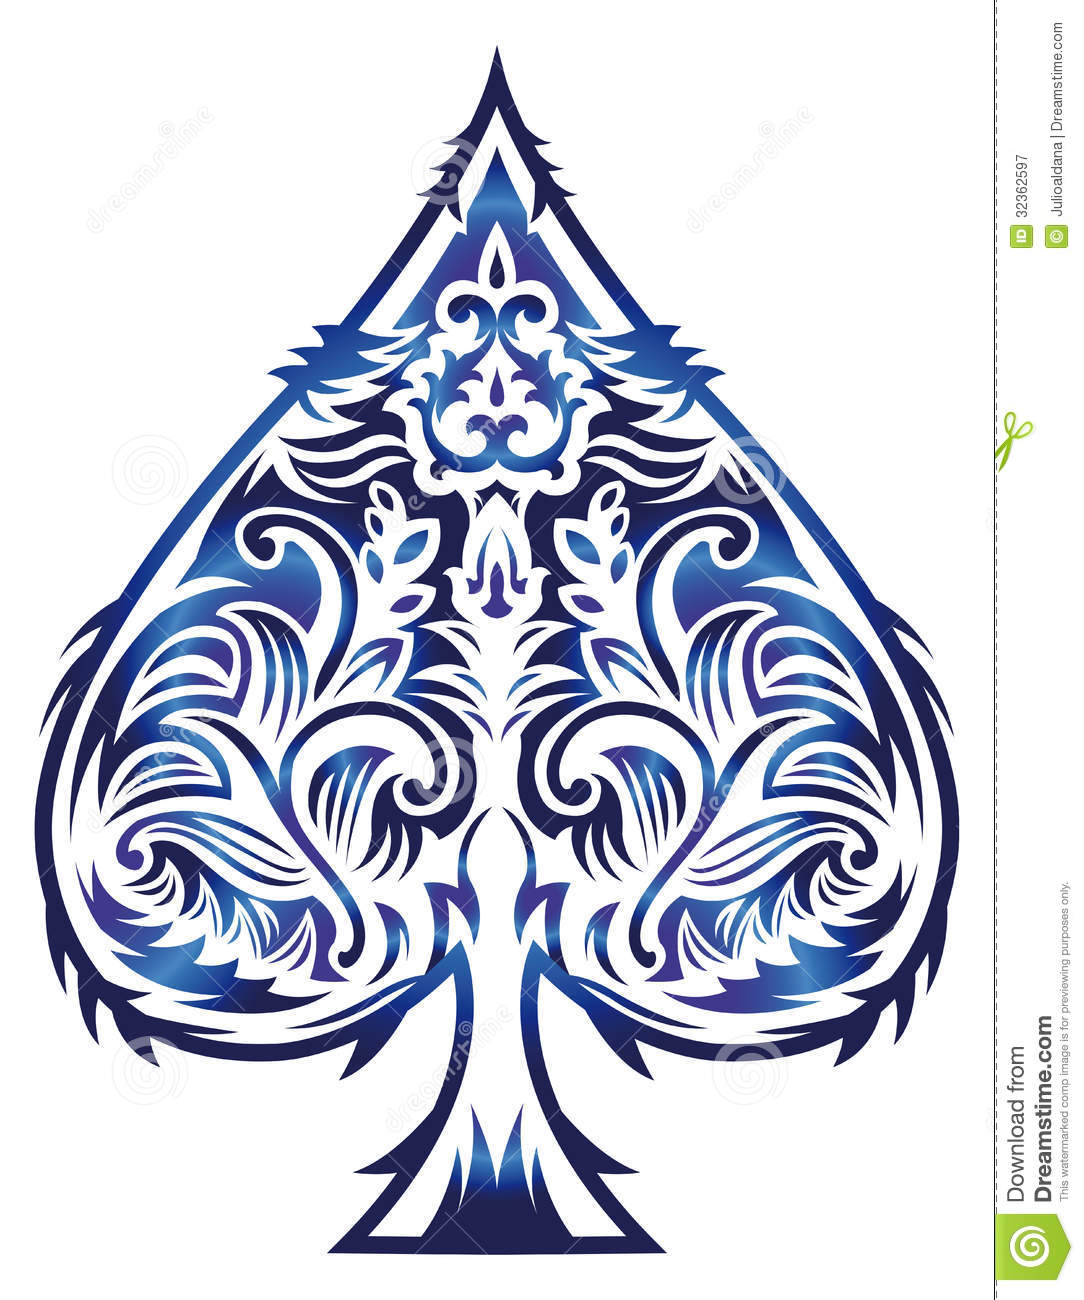 Card symbol shapes room sticker 256846270620459031 together with Clip Art Of Spade Cards BlO7EuCQ7E0qpUrD6YnLtOaAfvGlNDrJA3cw tSIyK8 additionally Royalty Free Stock Image Playing Cards Symbols Image11814466 together with No Way To Trump Death likewise Playing Cards Clipart. on on deck of cards club symbol